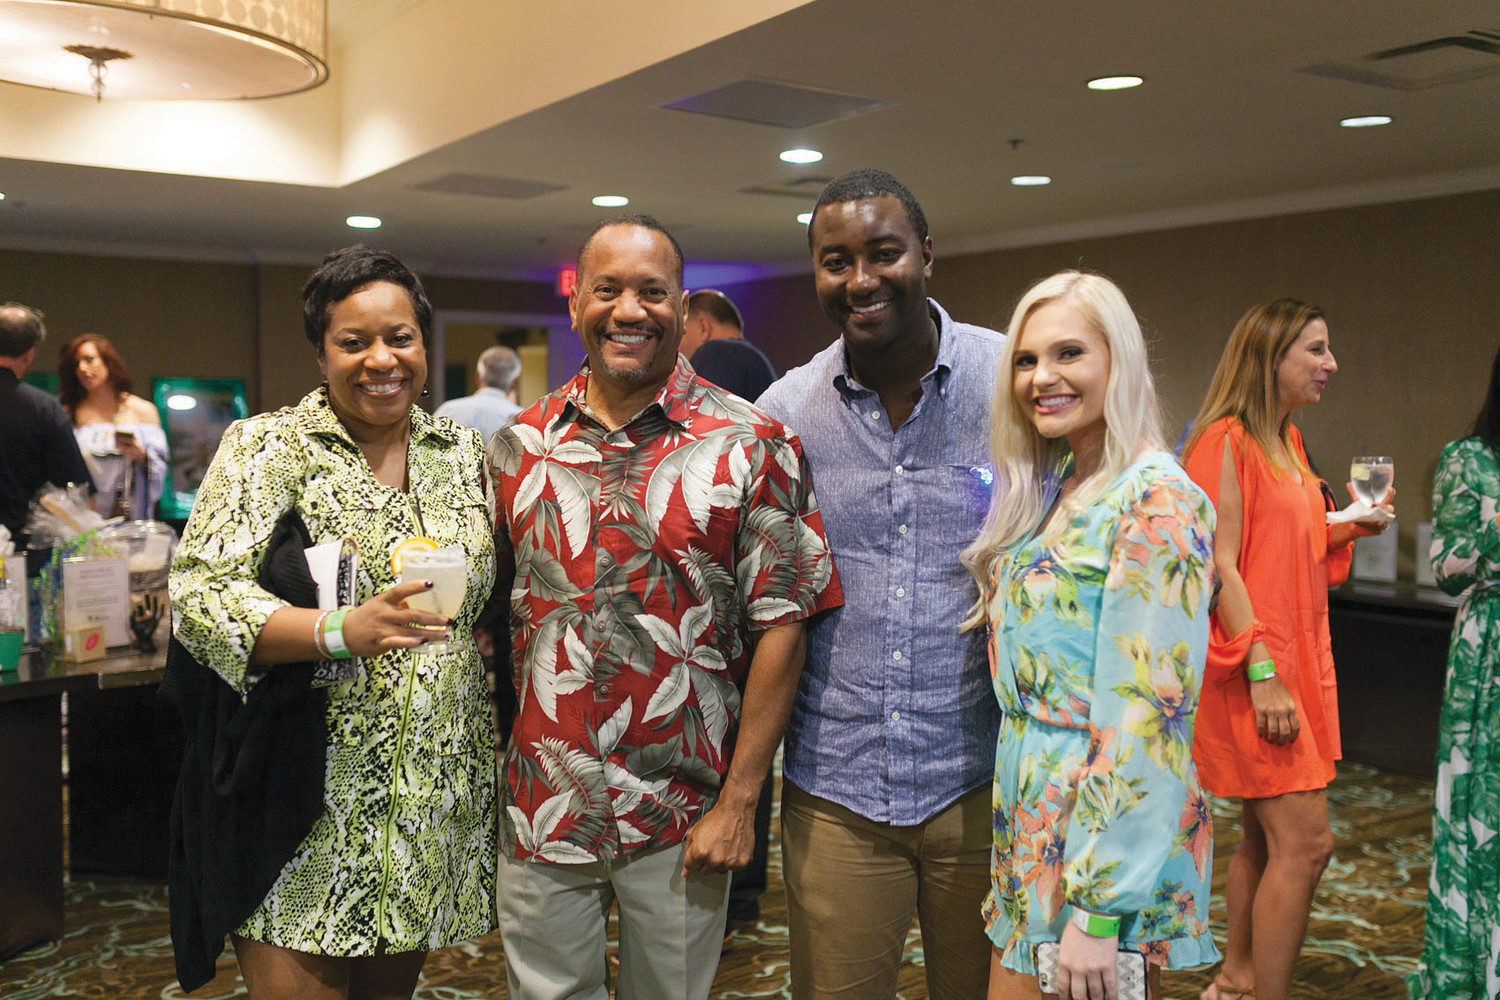 Guests embrace the tropical theme of Margarita J'Ville.